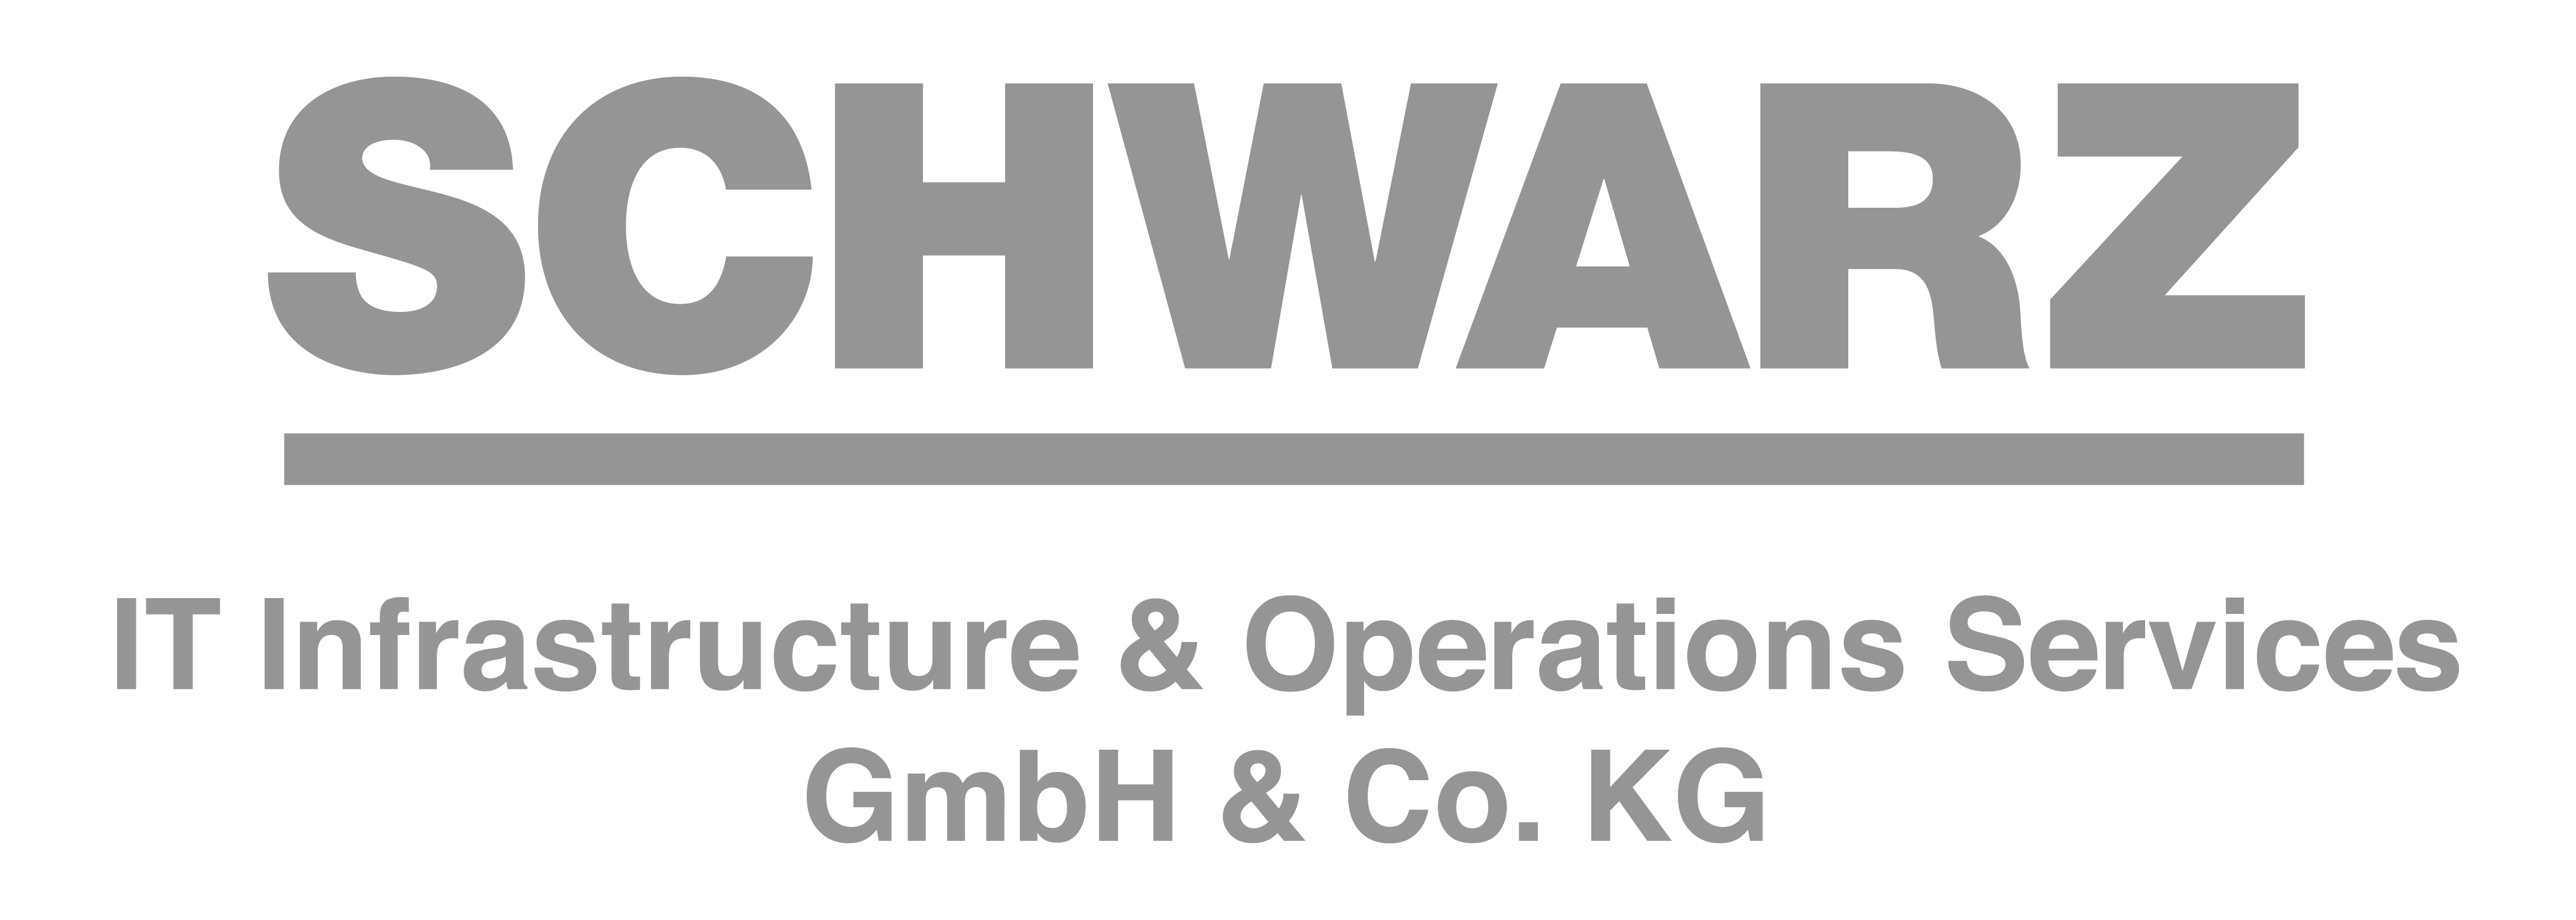 Schwarz IT Infrastructure & Operations Services GmbH & Co. KG